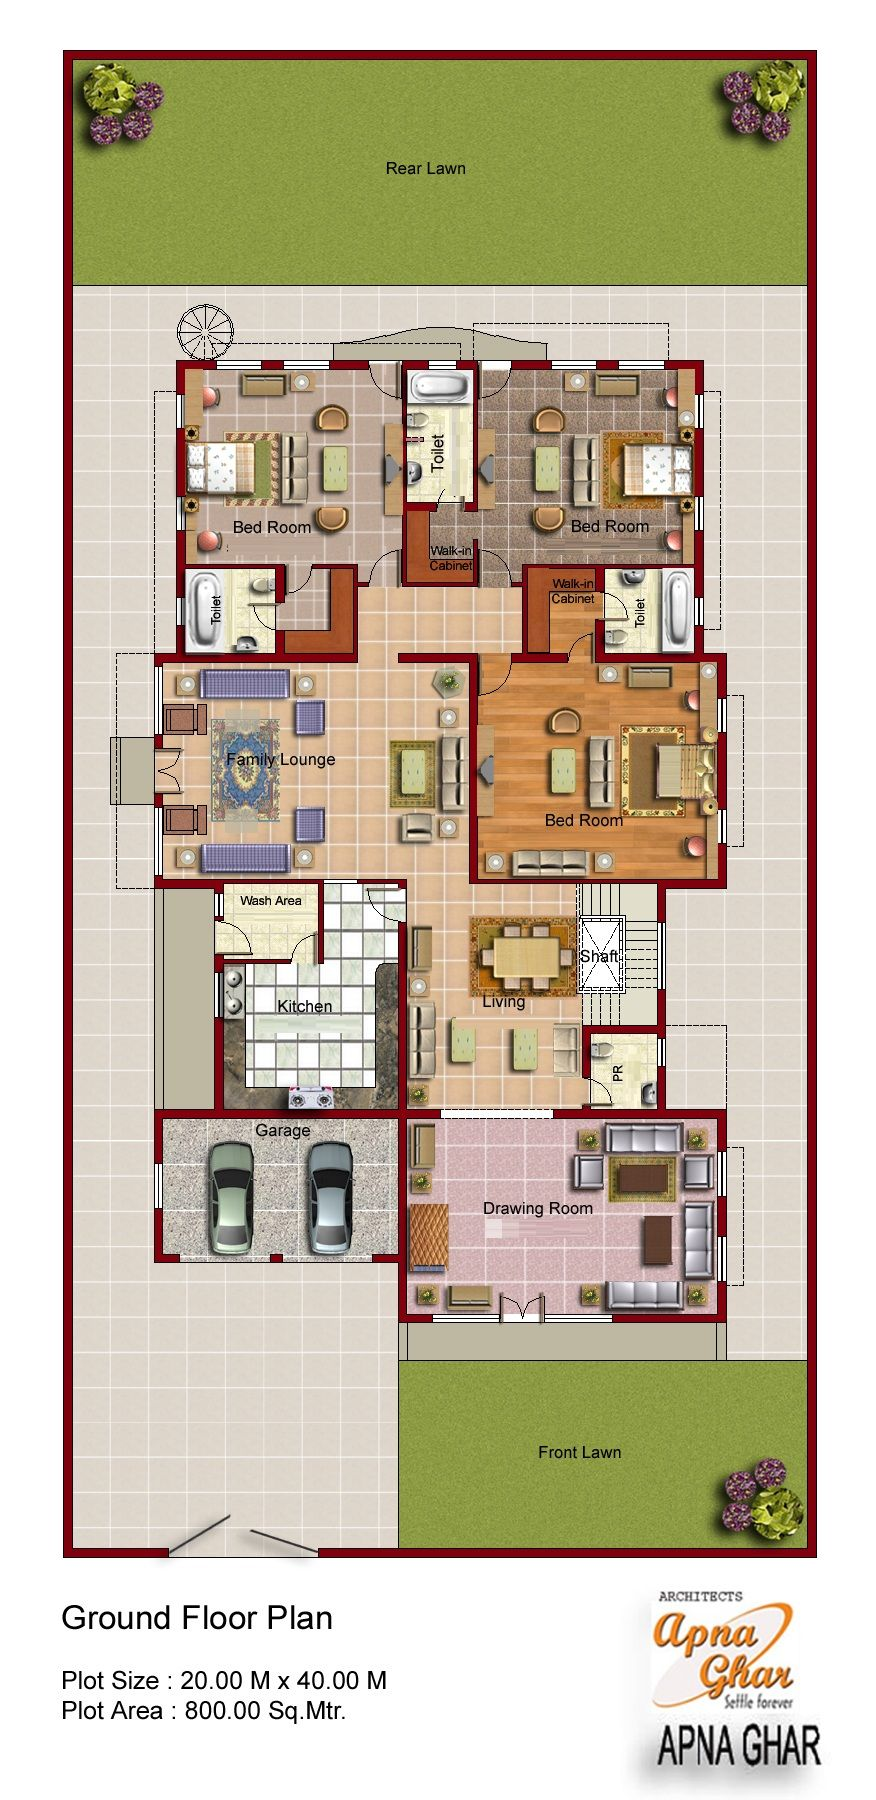 2d floor plan for modern duplex 2 floor house area 800 for 2 floor house design